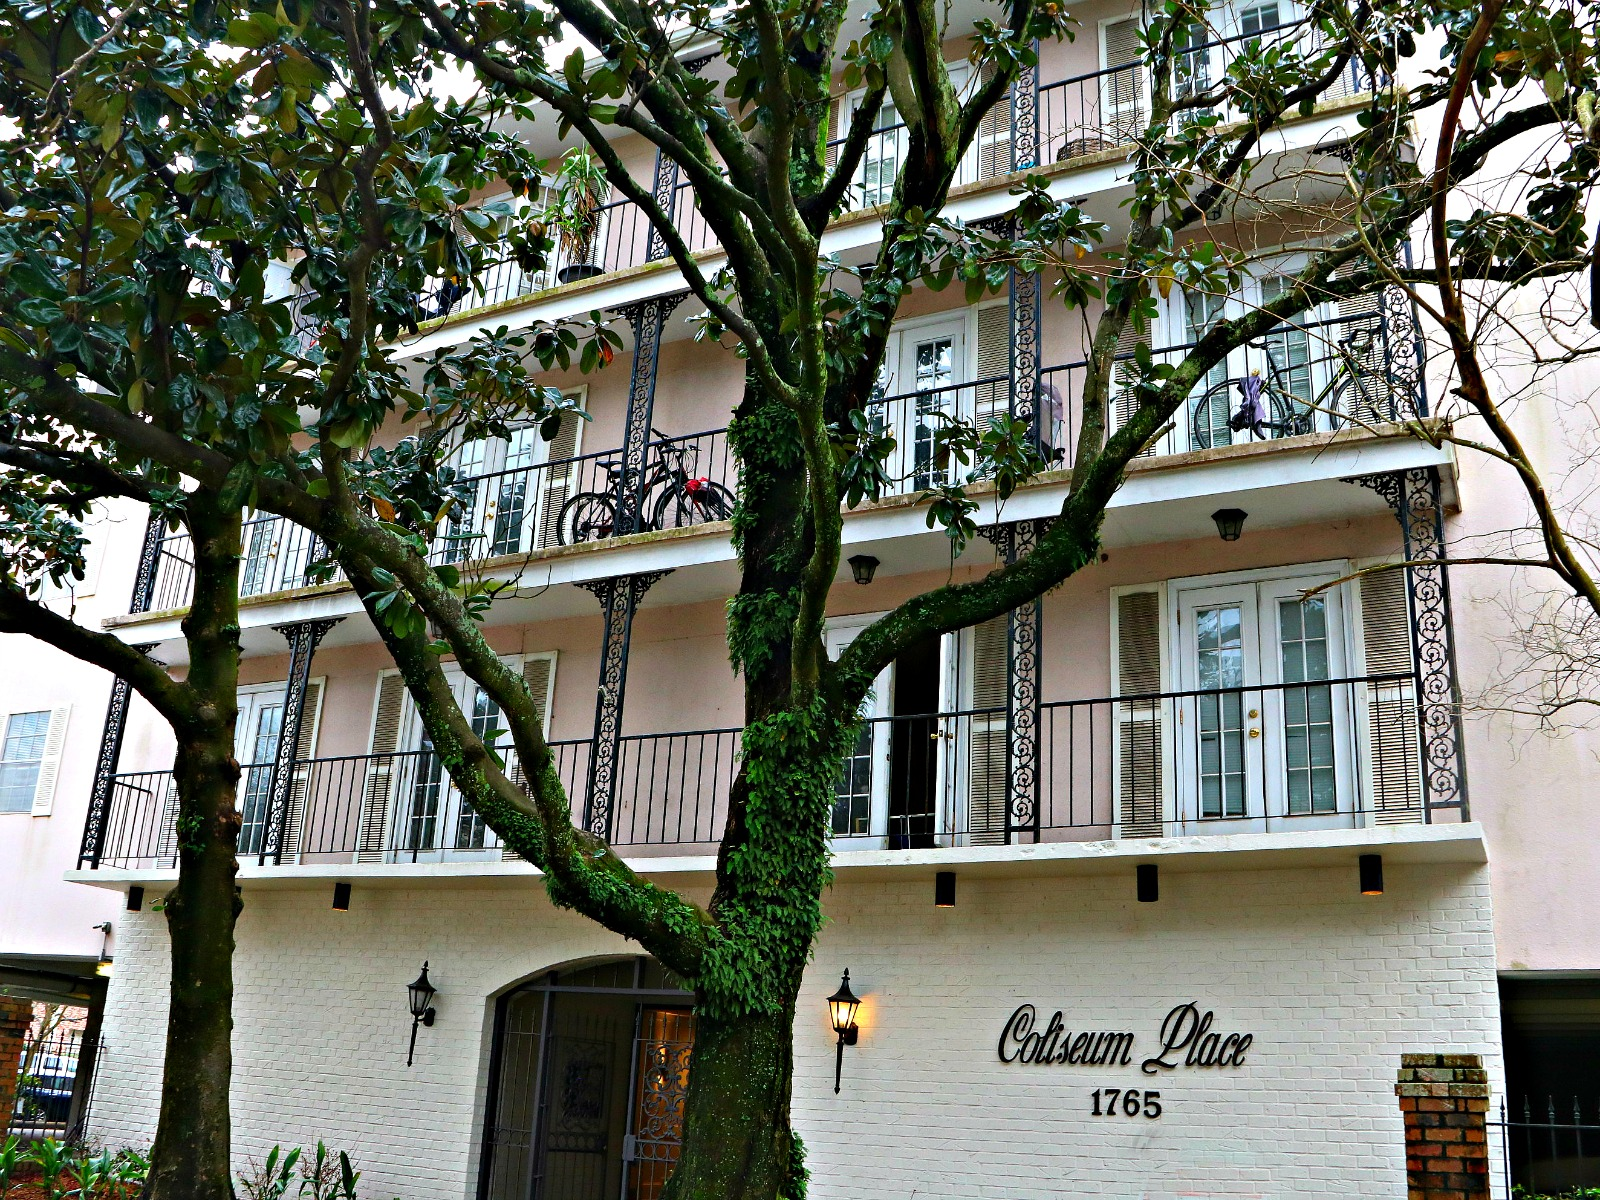 Coliseum Place Condos in Lower Garden District of New Orleans